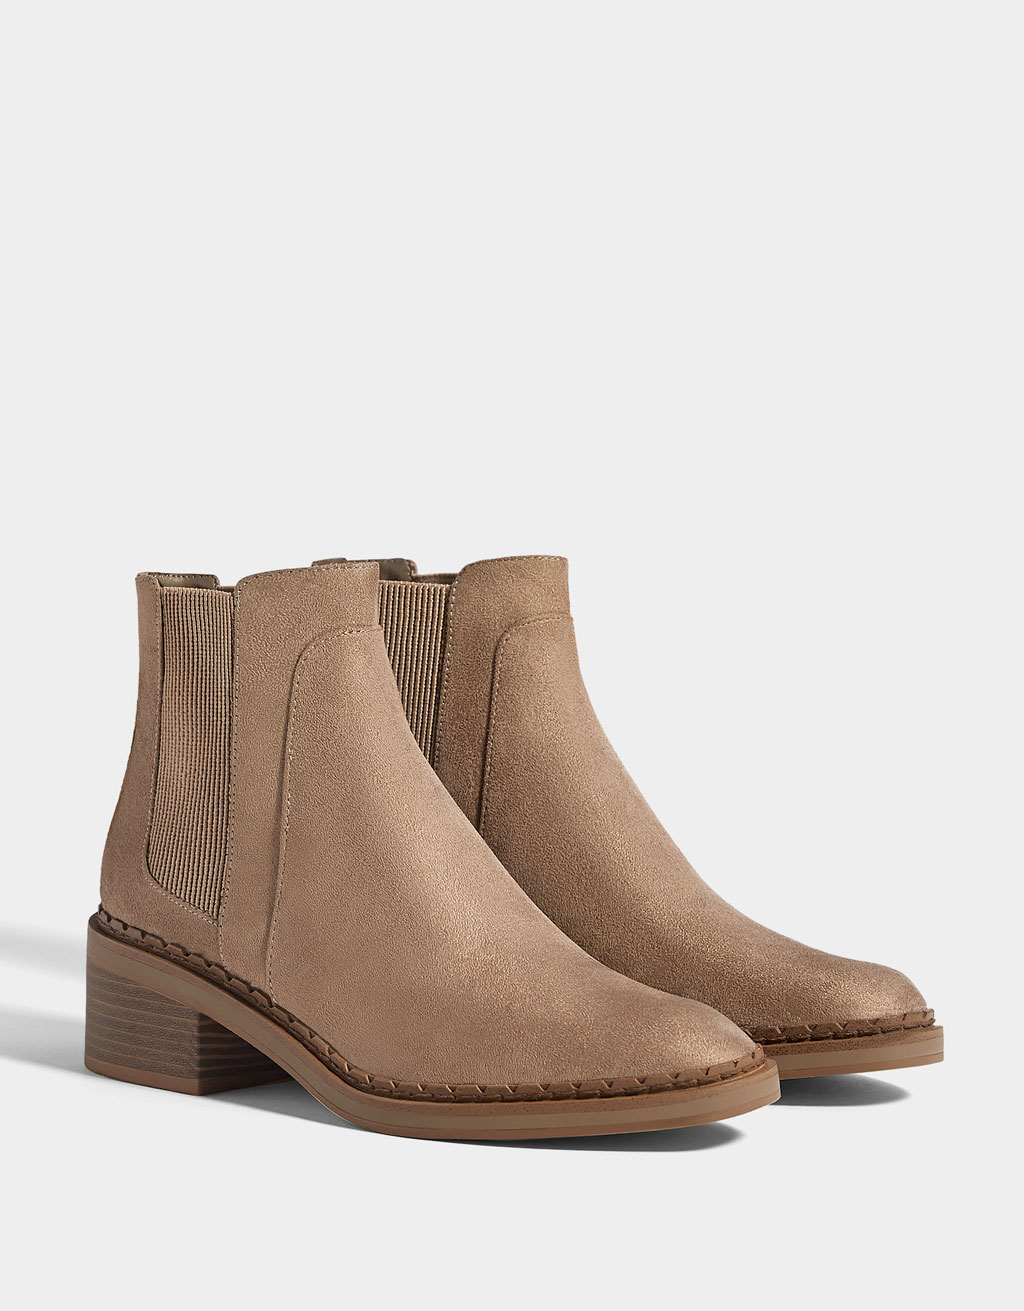 Mid-heel ankle boots with elastic panels